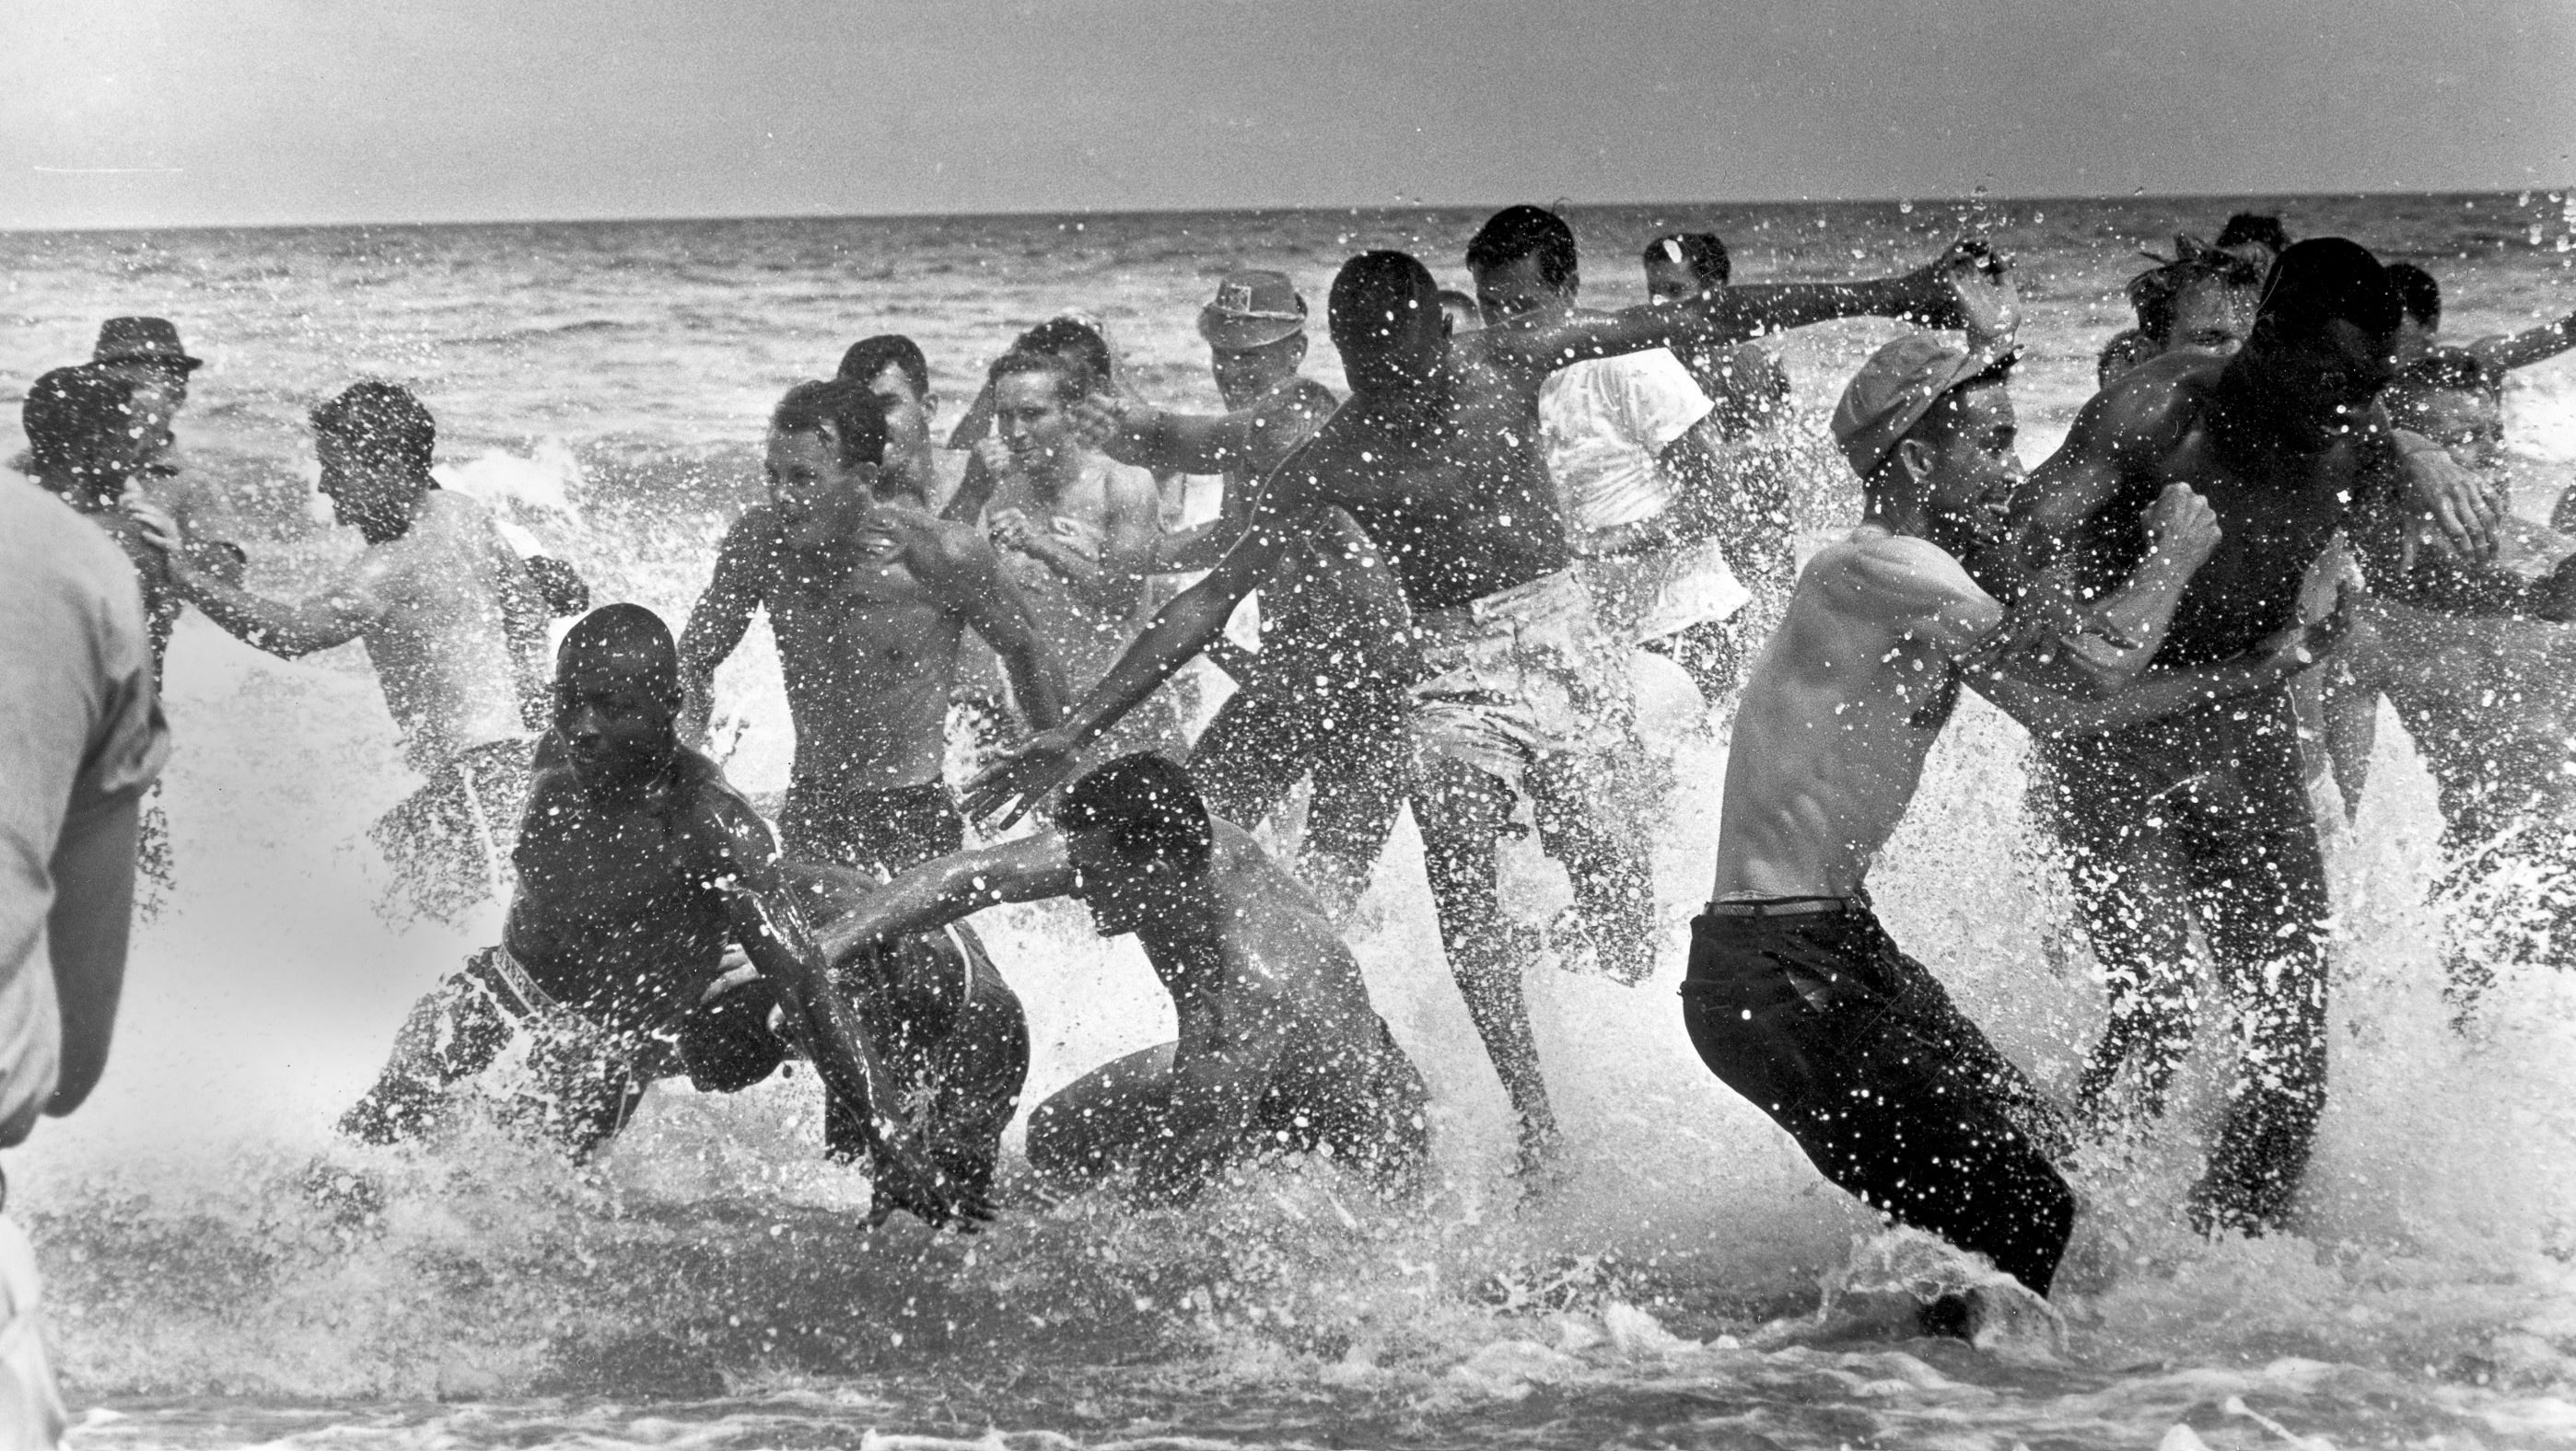 A group of white segregationists attack a group of Black activists as they began to swim at St. Augustine Beach, Florida, June 25, 1964.  Police moved in and broke up the fighting between the segregationist and civil rights demonstrators.